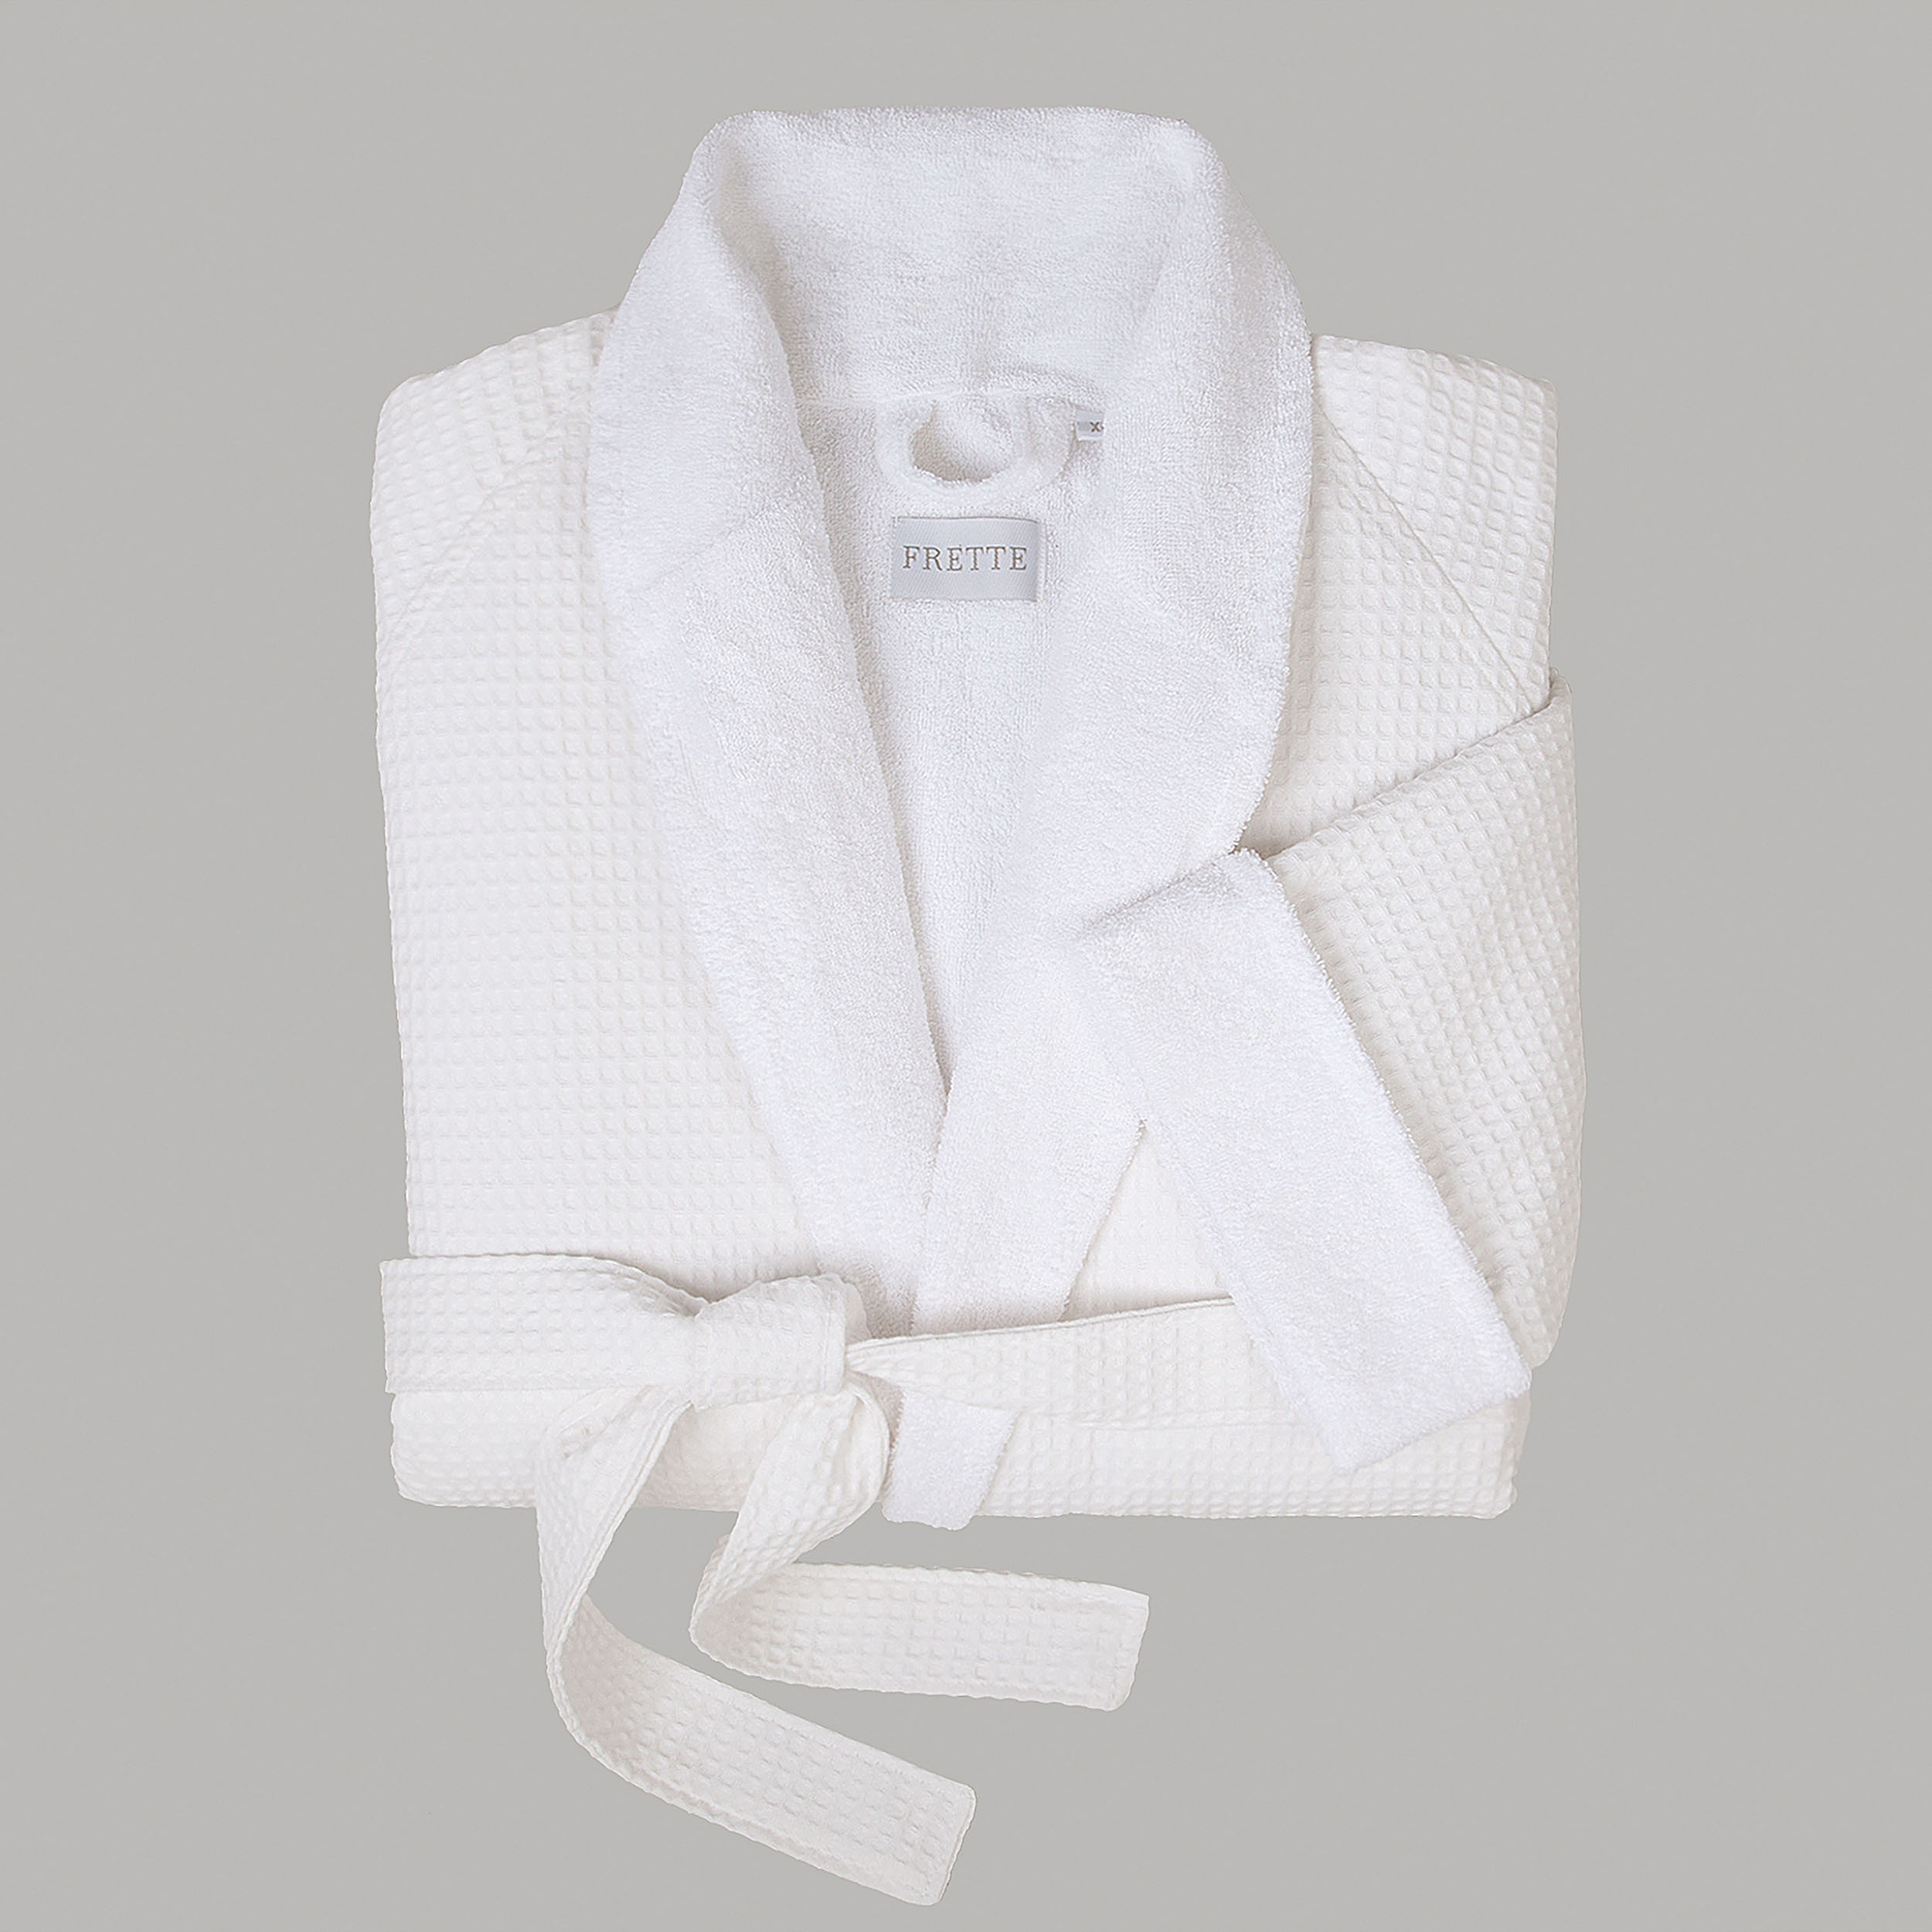 Frette® Waffle Weave Terry Robe - Luxury Hotel Products - The ... de9a81f2f